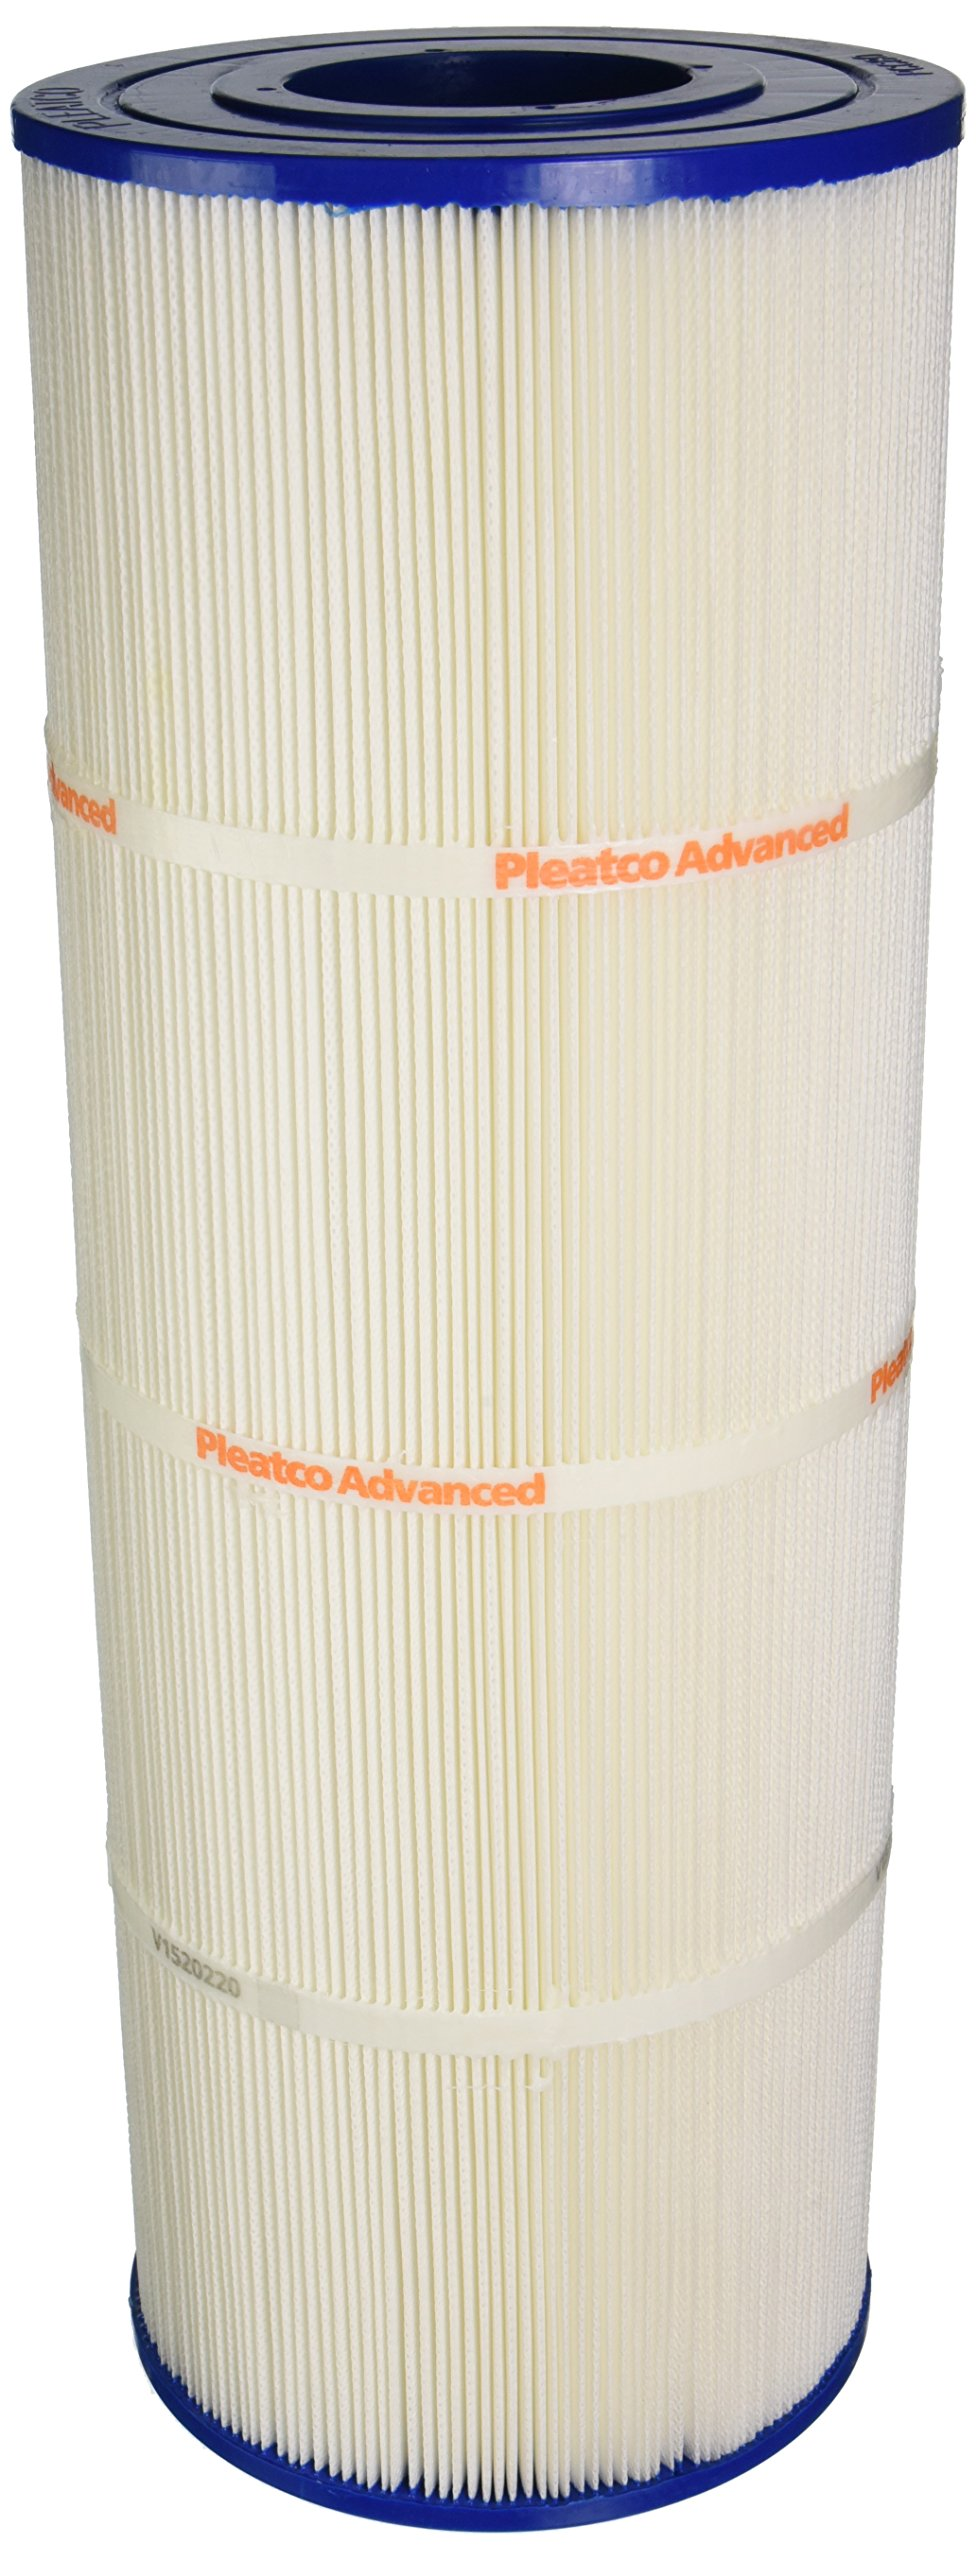 pleatco PCC80-PAK4 Replacement Cartridge for Pentair Clean and Clear Plus 320, Pack of 4 Cartridges by Pleatco